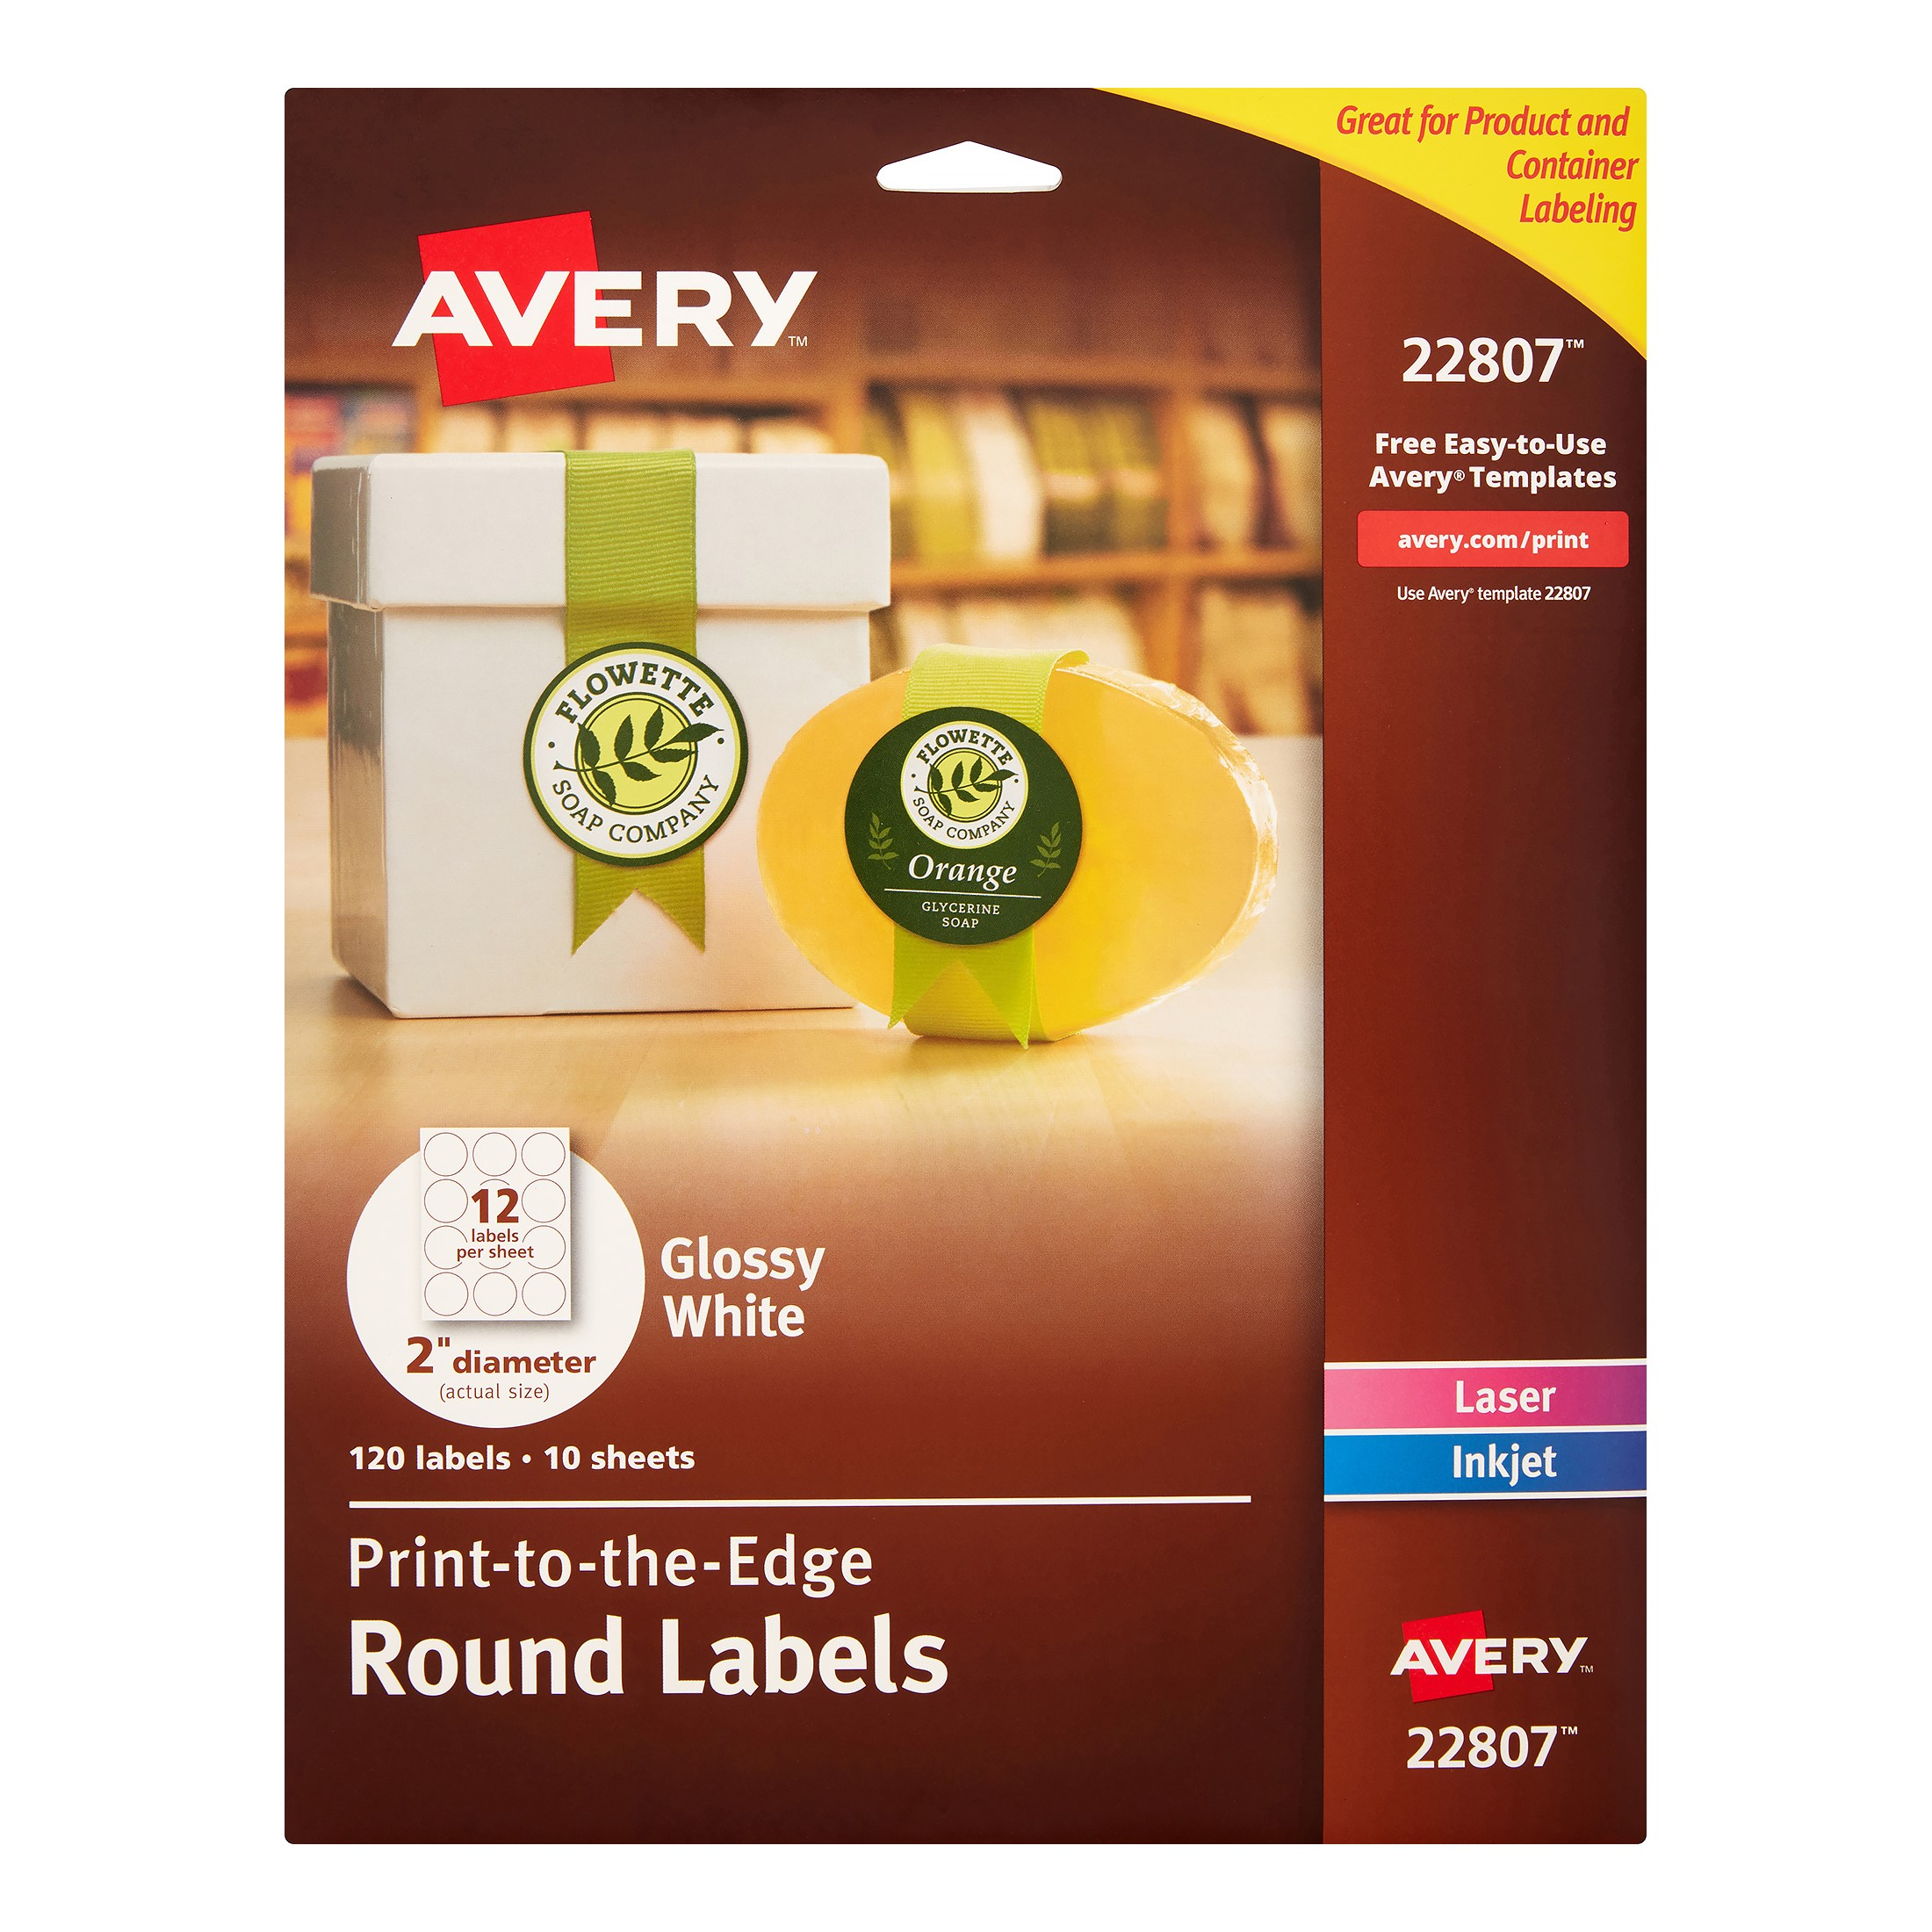 Avery print to the edge round labels 2 in diameter white 120 avery print to the edge round labels 2 in diameter white 120 count 22807 walmart pronofoot35fo Gallery